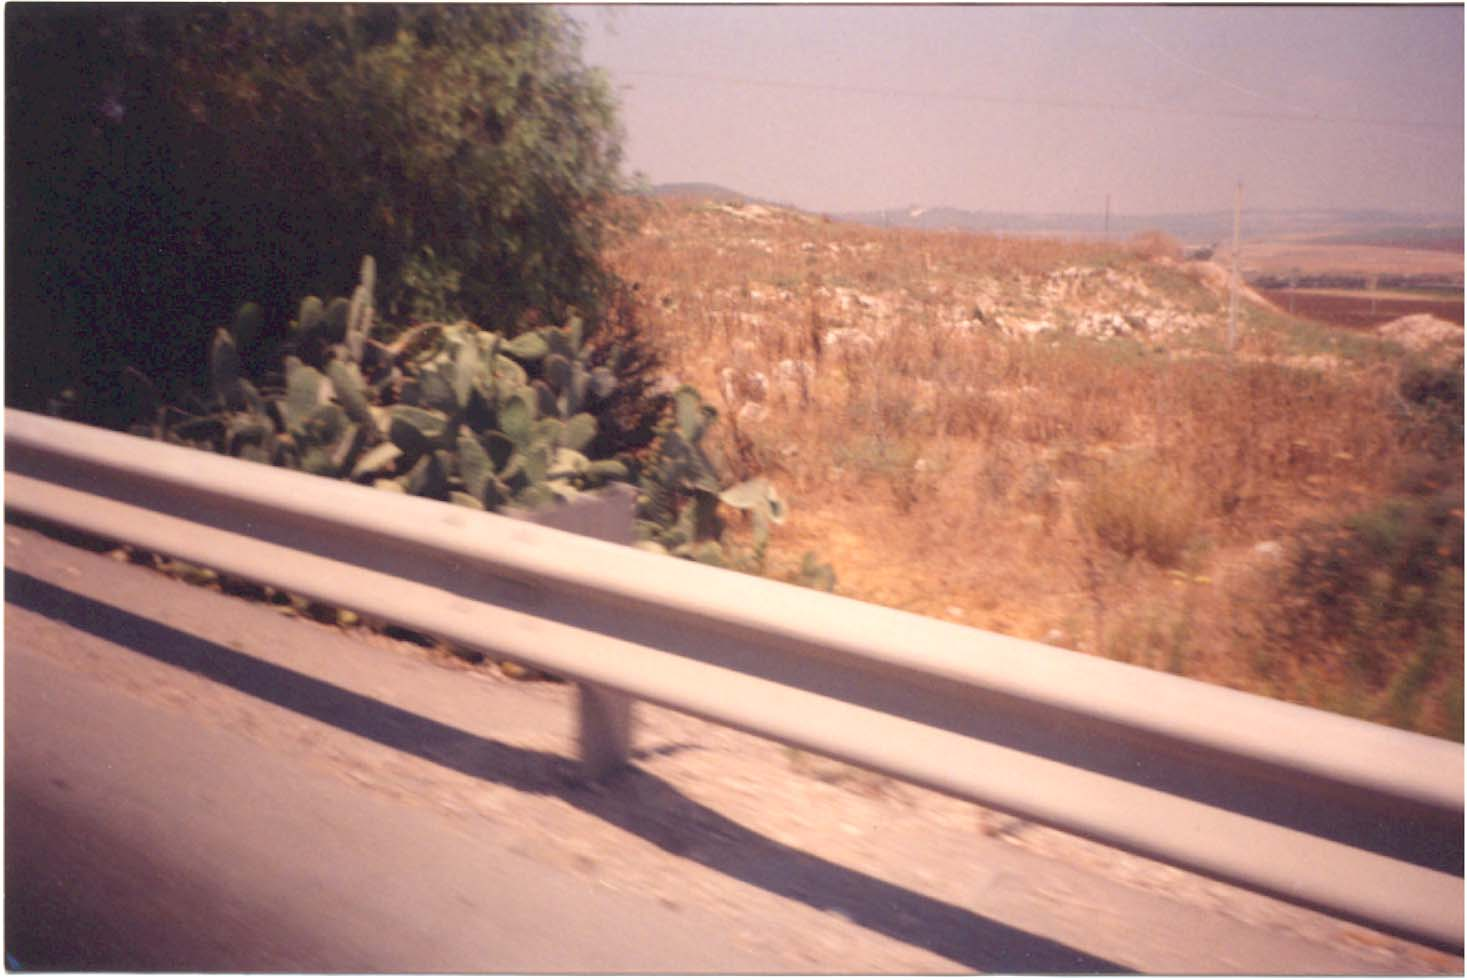 General View Of Ajjur Site, 1990s